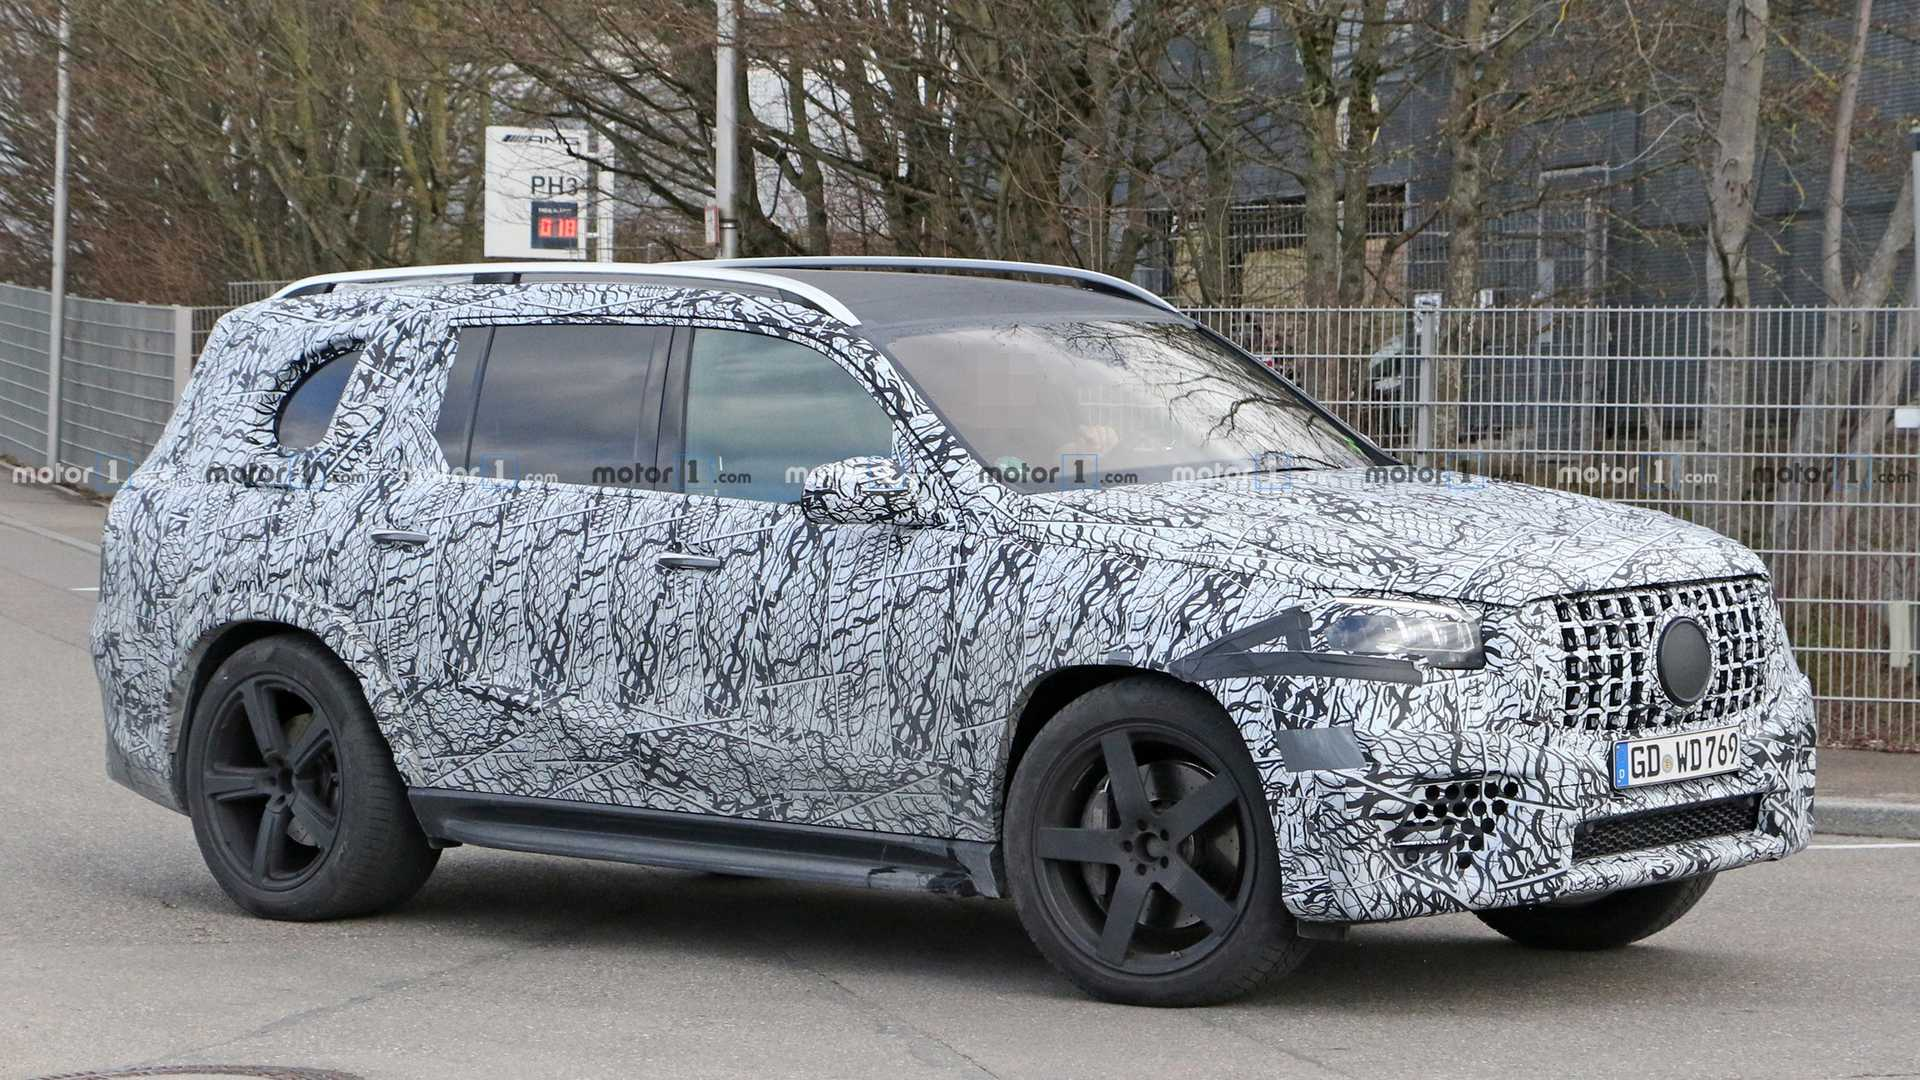 The mysterious elongated version of the Mercedes-Benz GLS, which has repeatedly been spotted by photographers over the past months, is actually a Maybach luxury vehicle, the manufacturer reports.